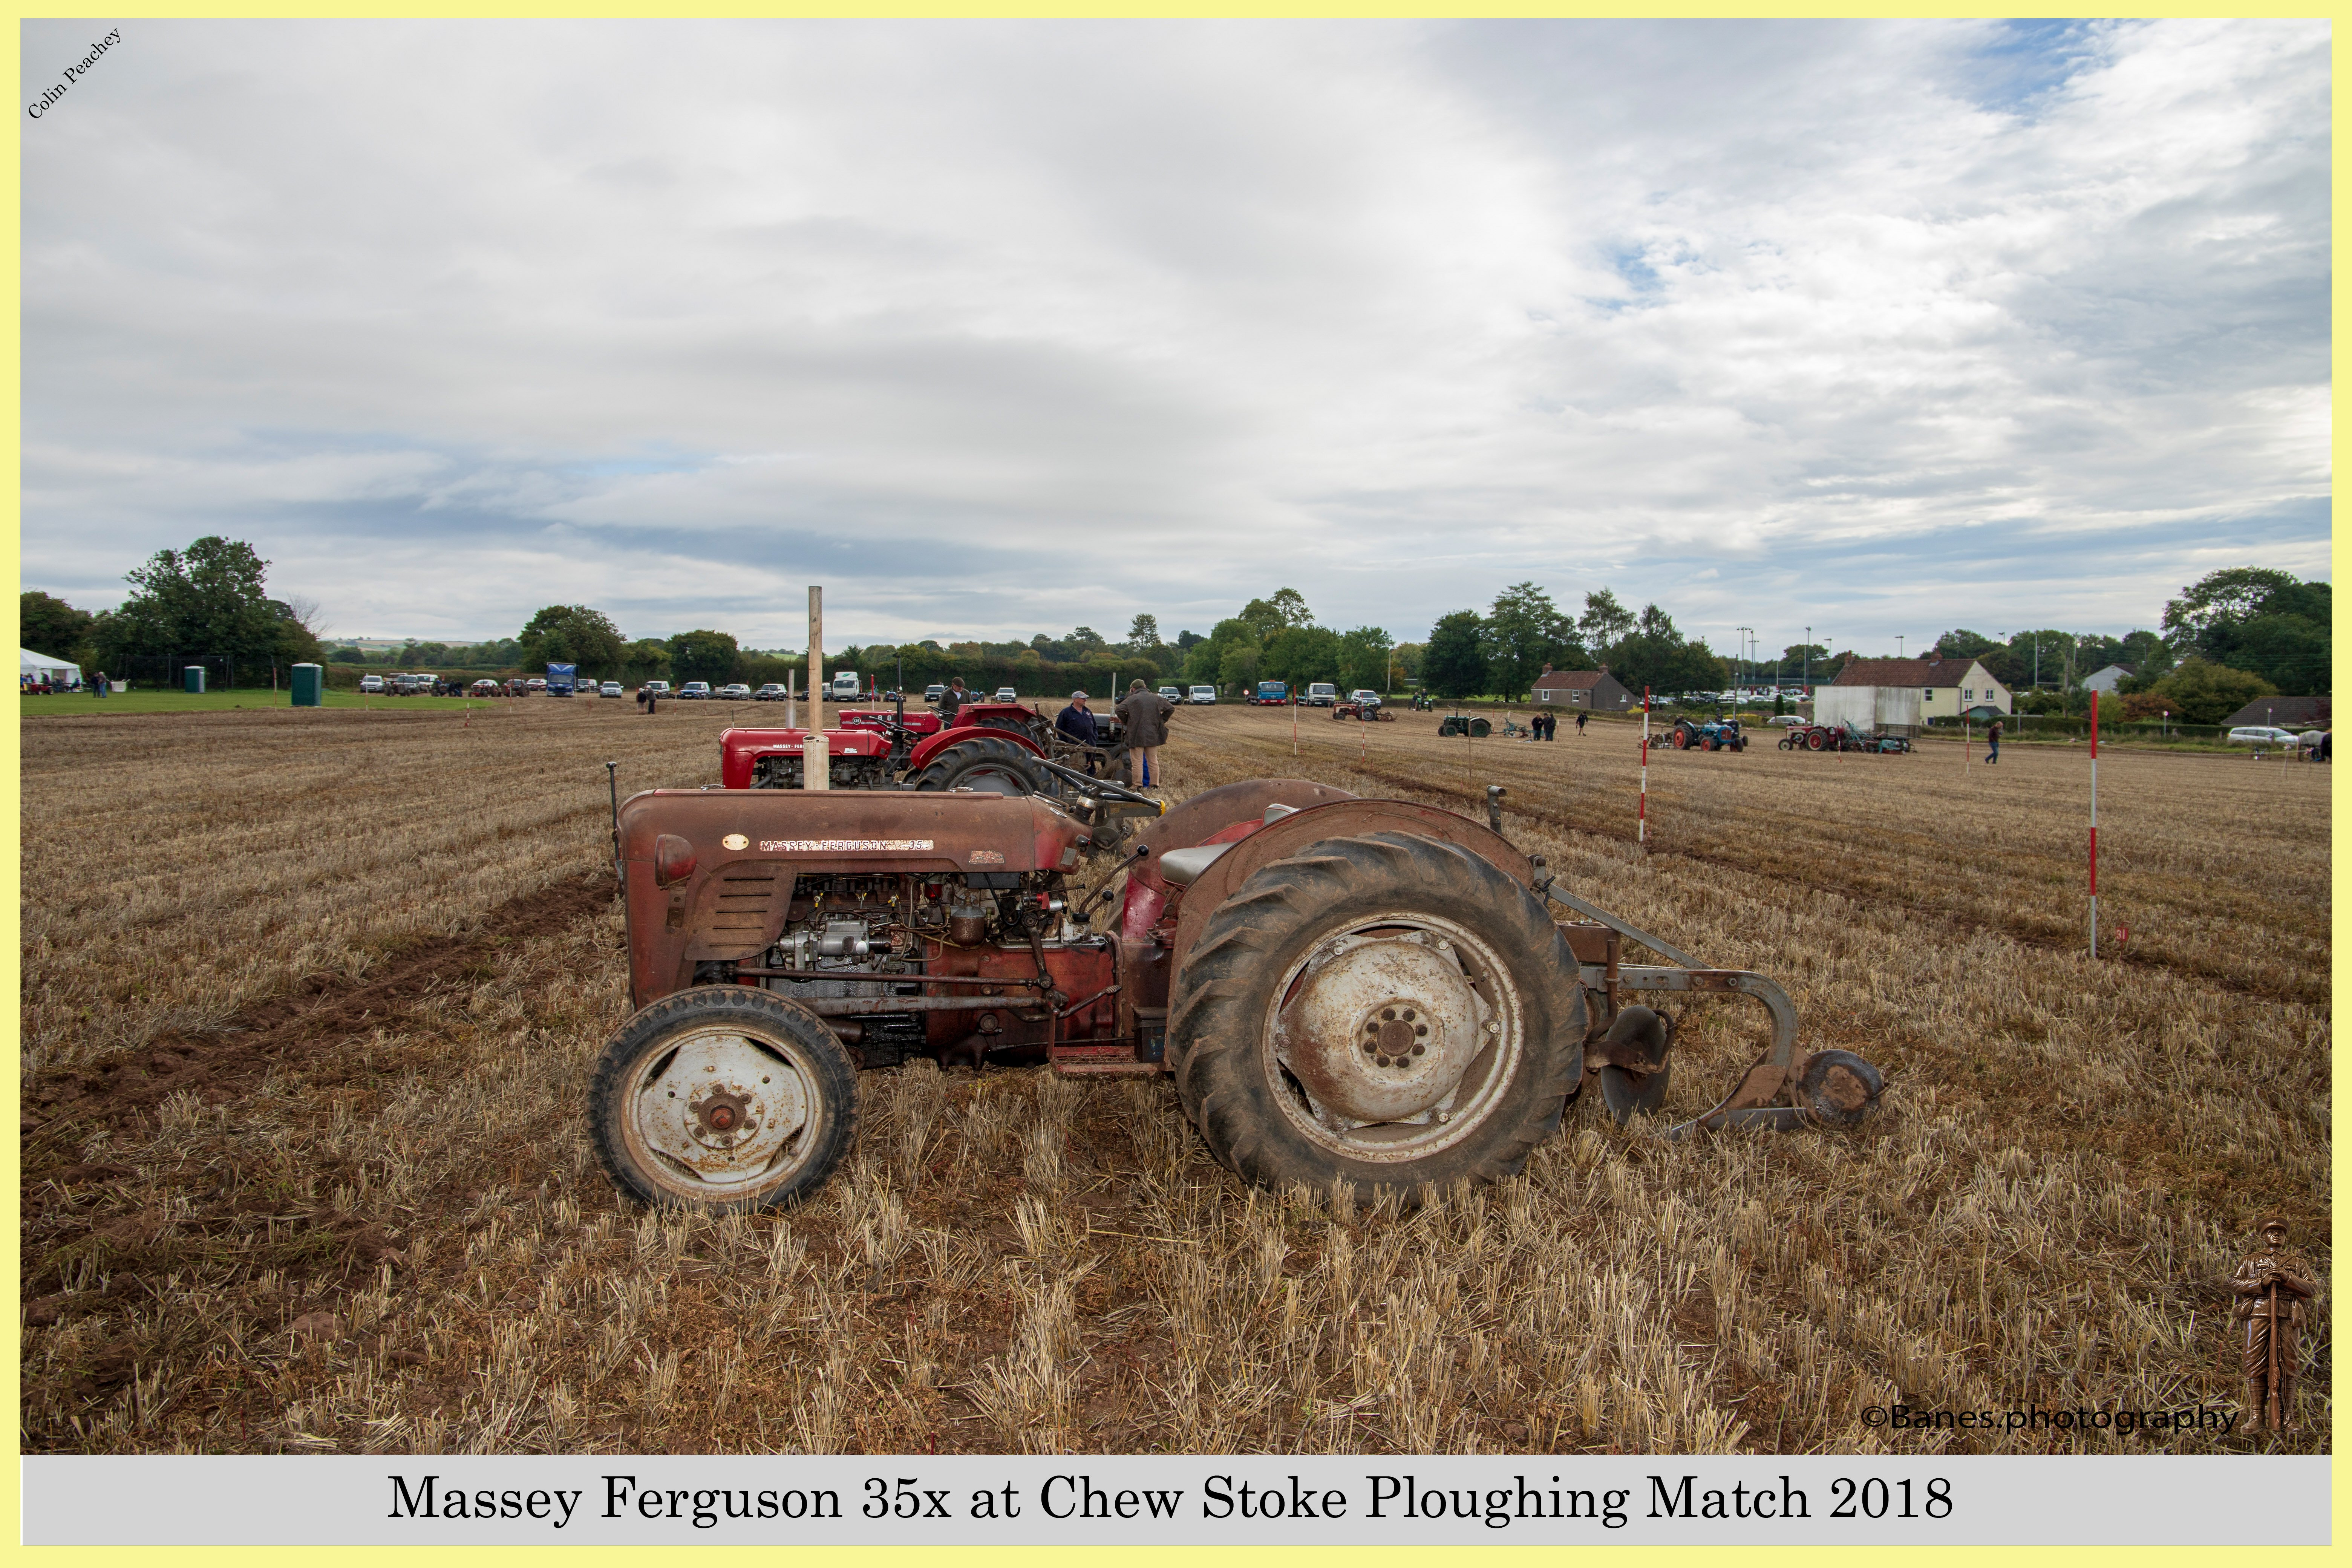 Massey Ferguson 35, at Chew Stoke 2018